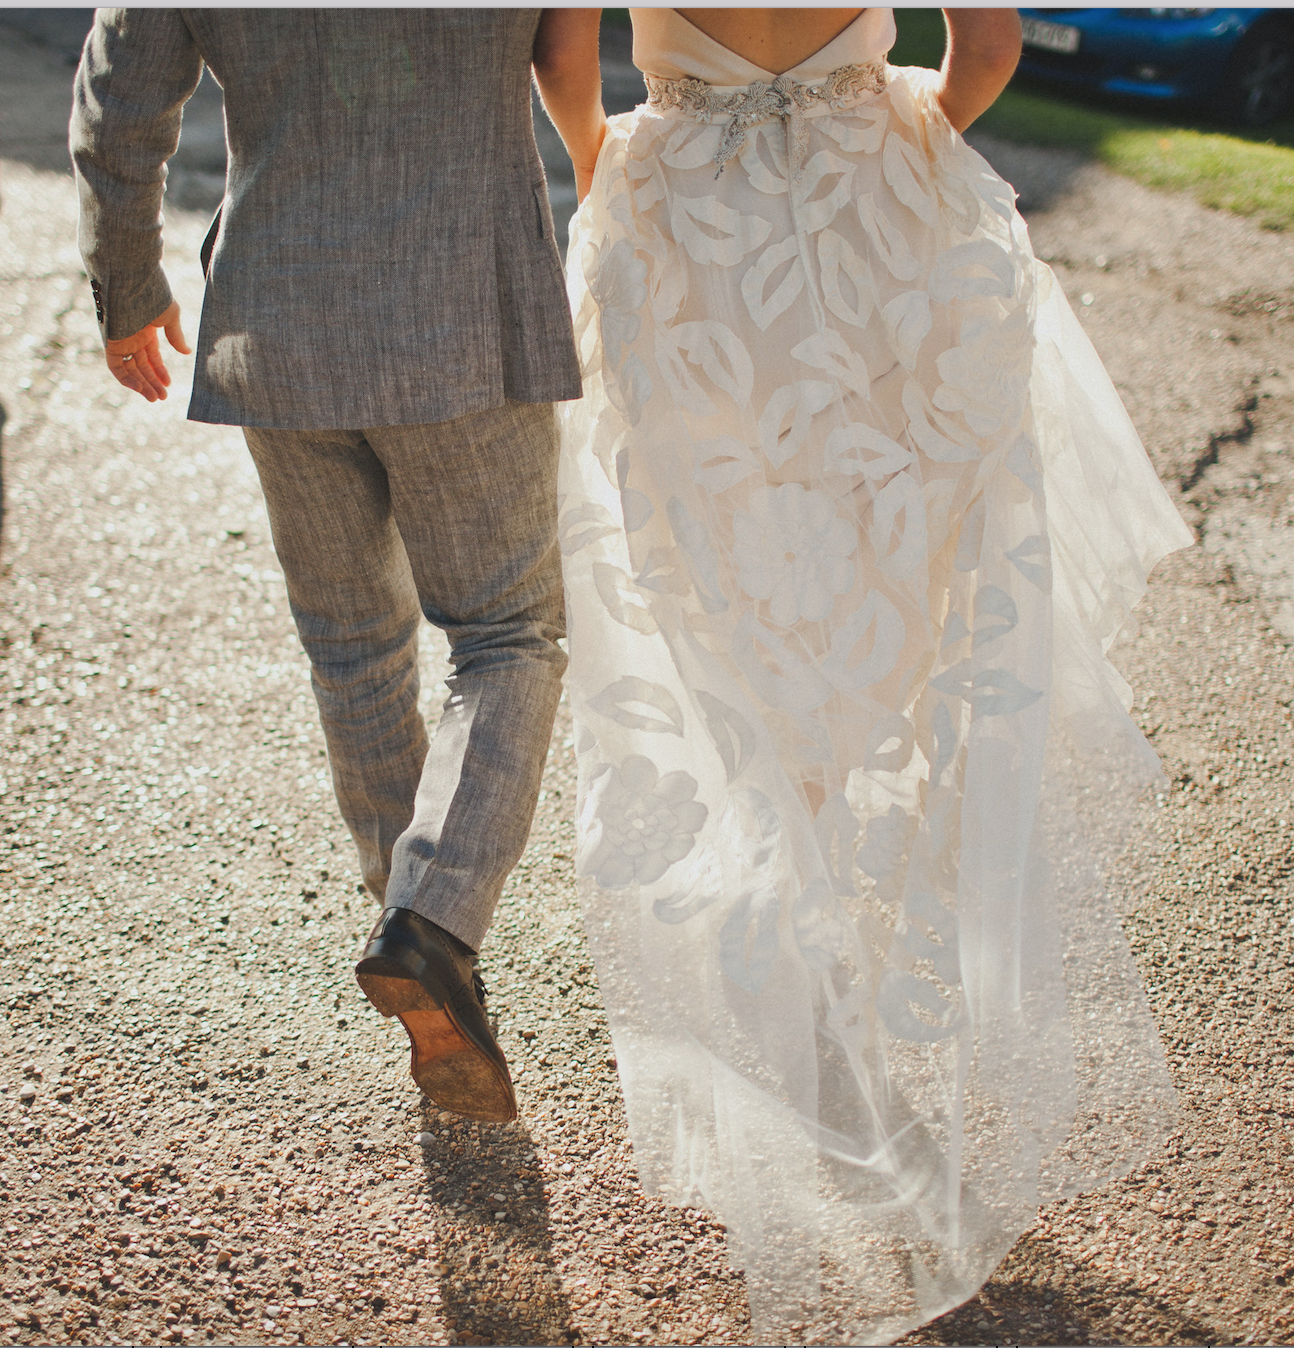 Our lovely real bride Antonia wears the Susie skirt and Iris slip - Wedding dress by Halfpenny London